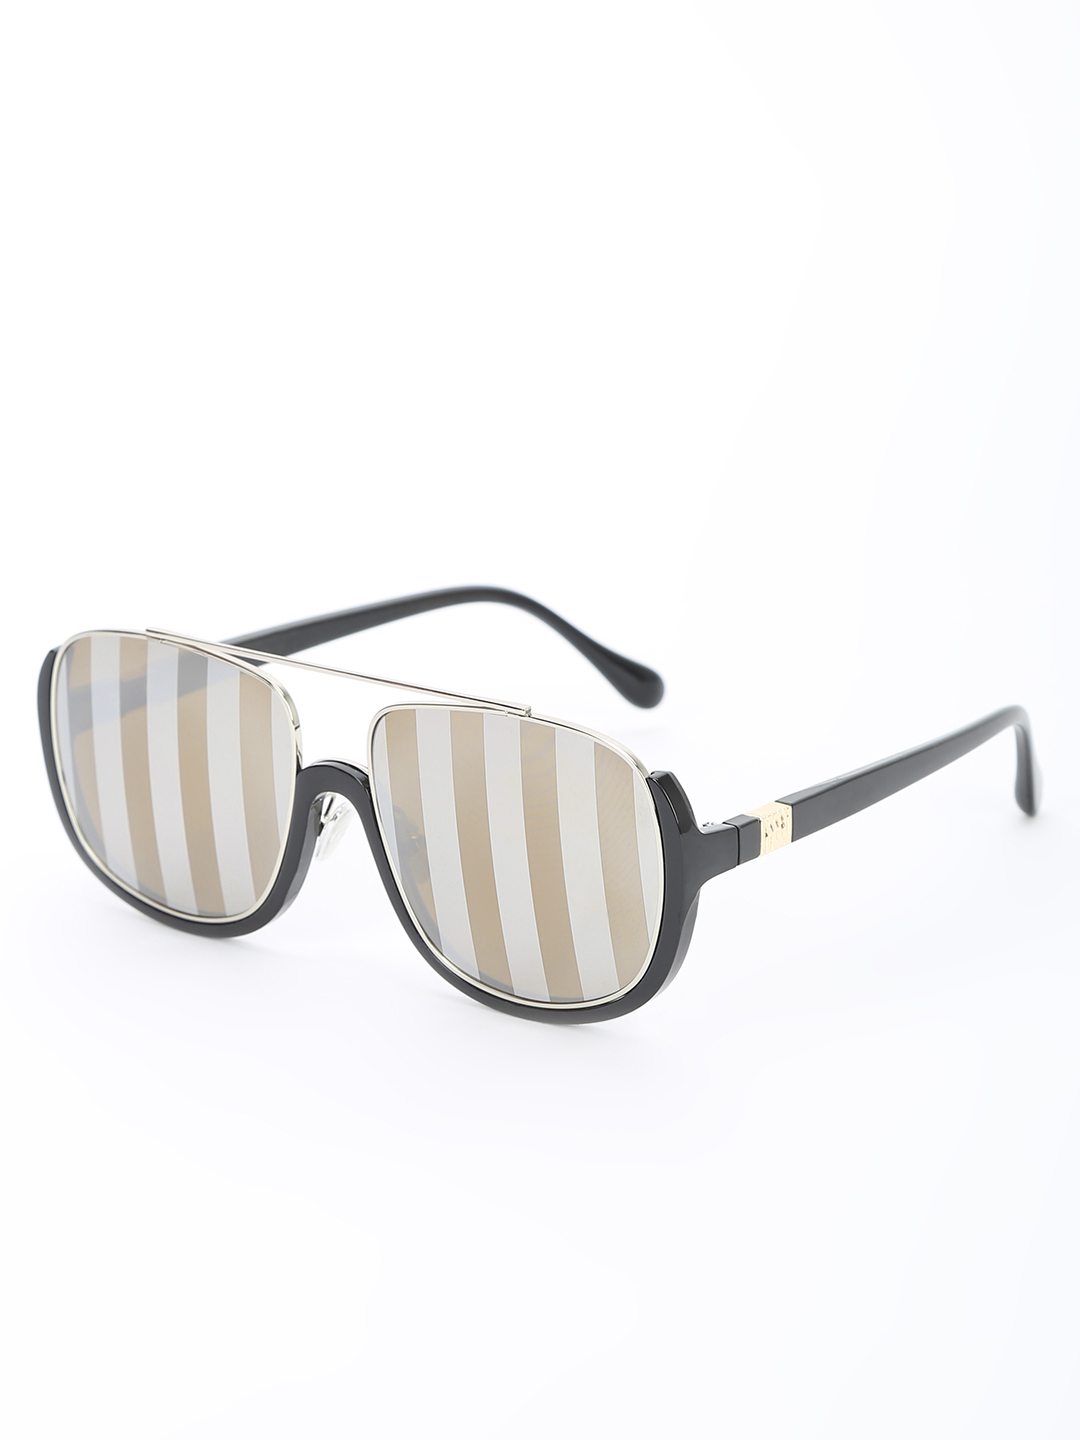 Pataaka Brown Texture Mirrored Pilot Sunglasses 1